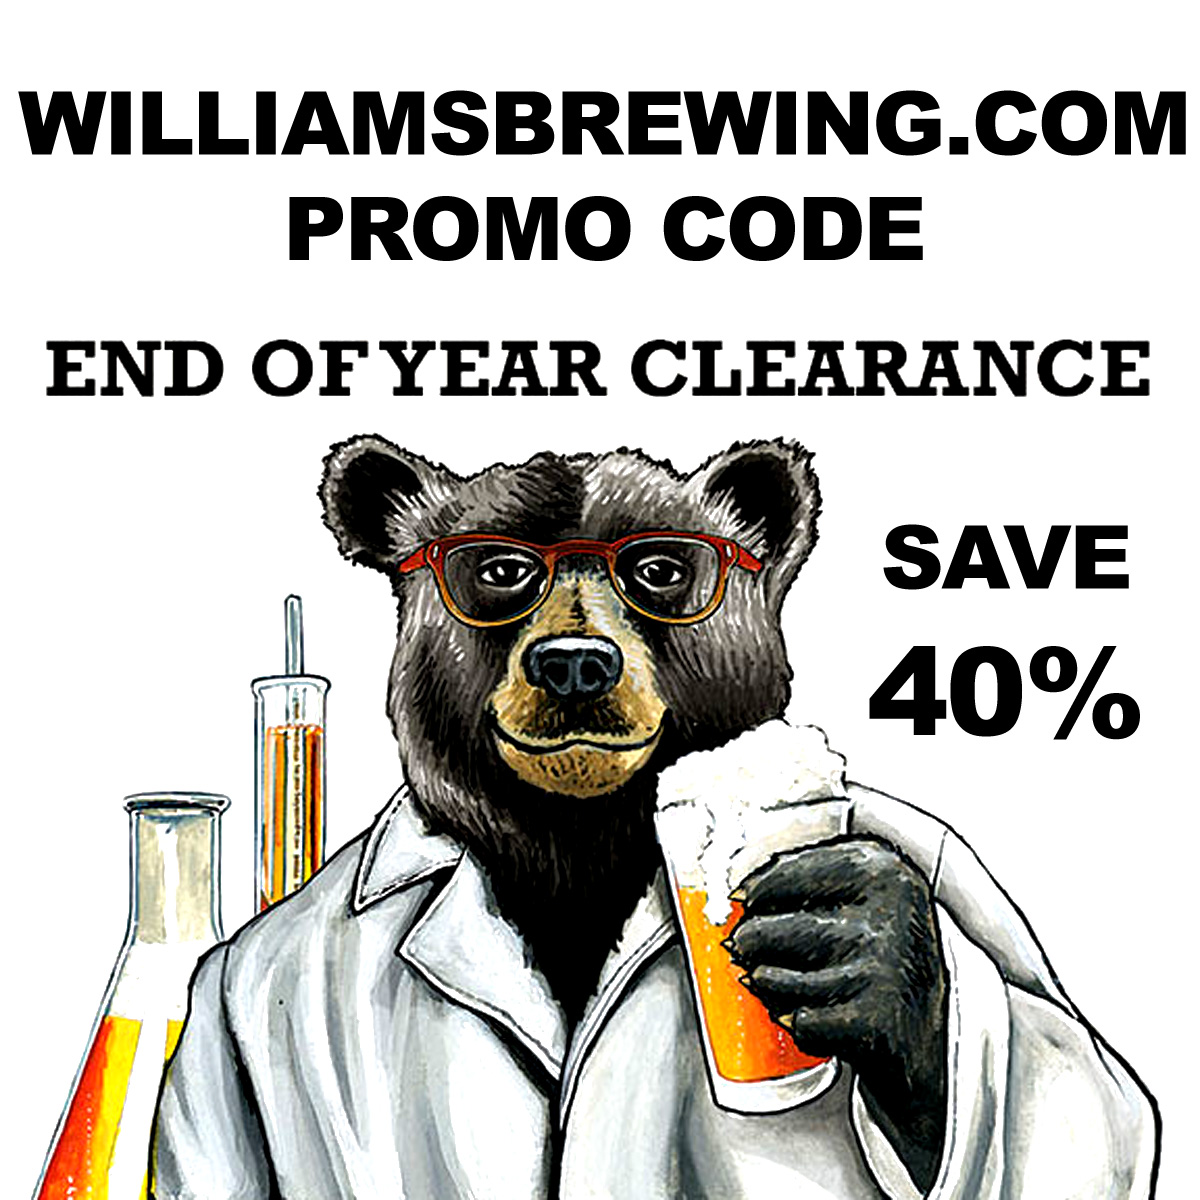 Home Wine Making Coupon Codes for Save 40% On Popular Wine Making Items At The Williams Brewing Year End Clearance Sale Coupon Code